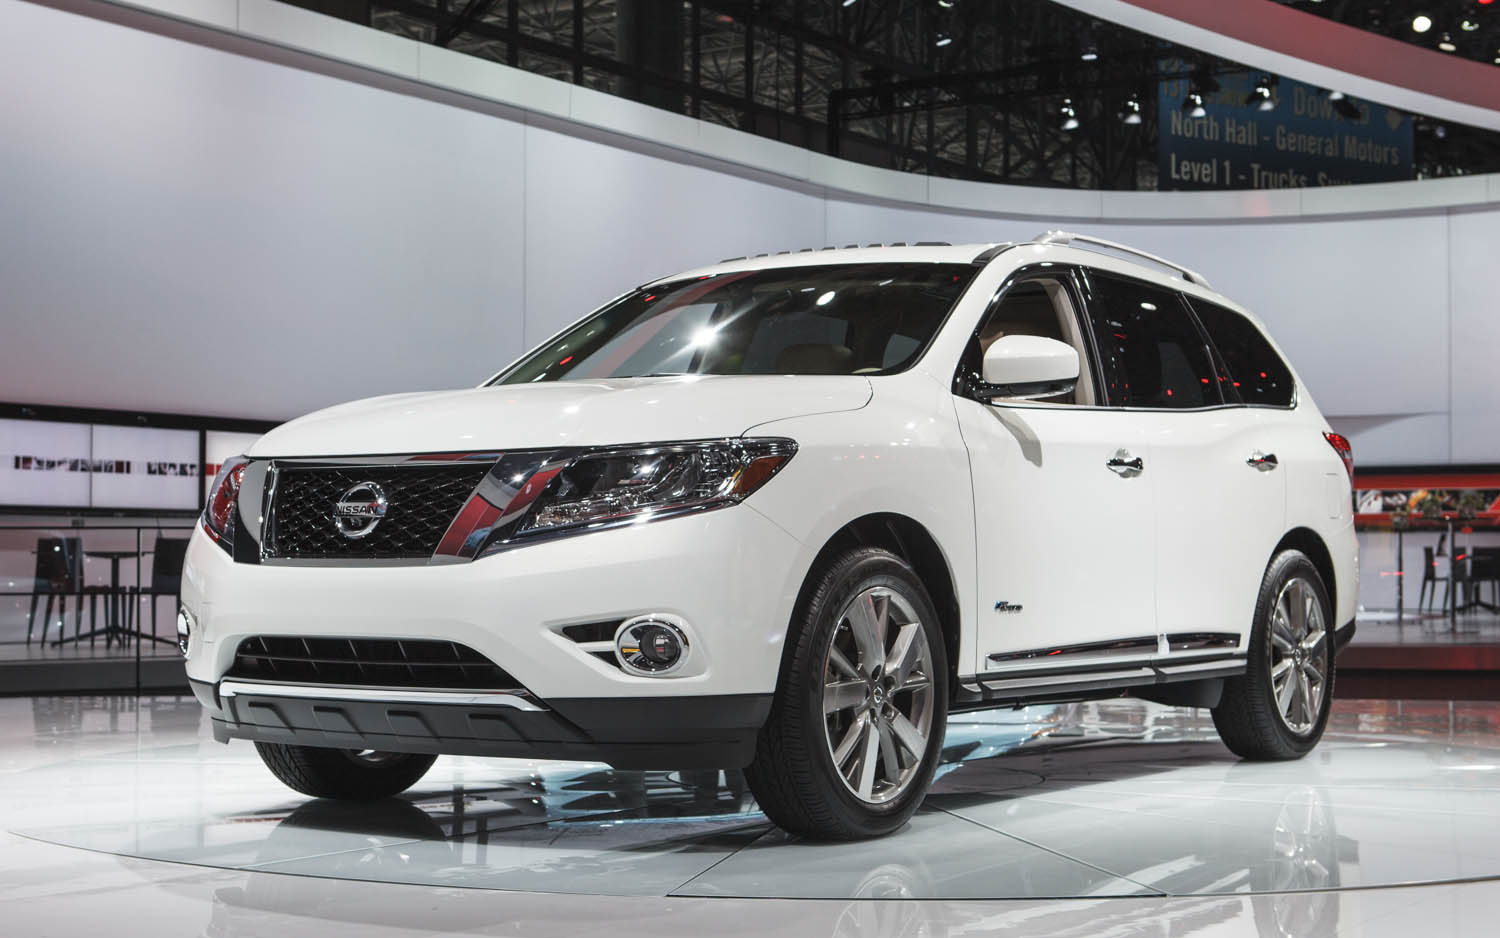 2014 Nissan Pathfinder Owners Manual Guide Pdf